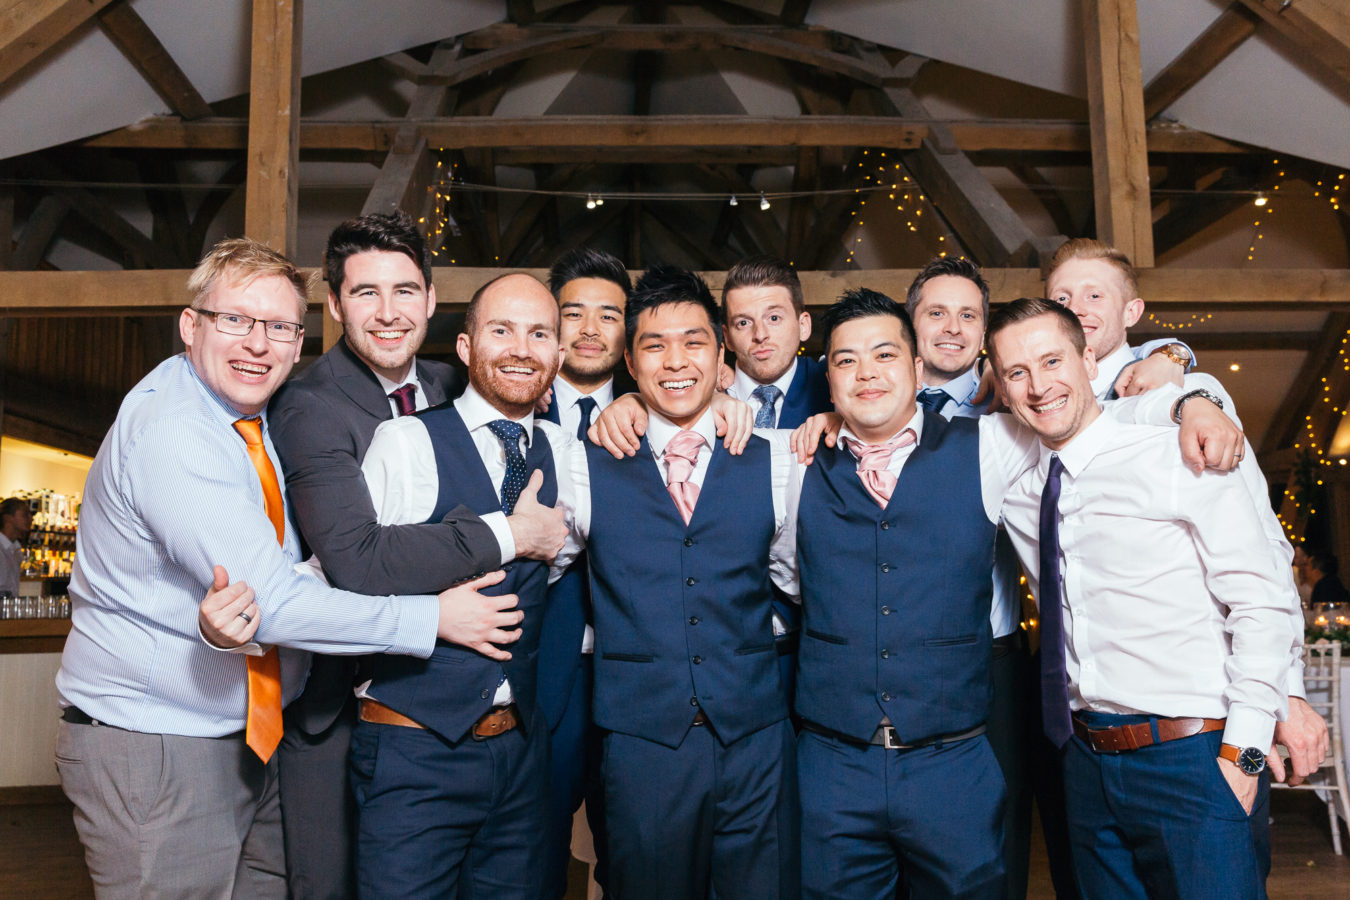 Sandburn Hall and Tykes Restaurant Wedding